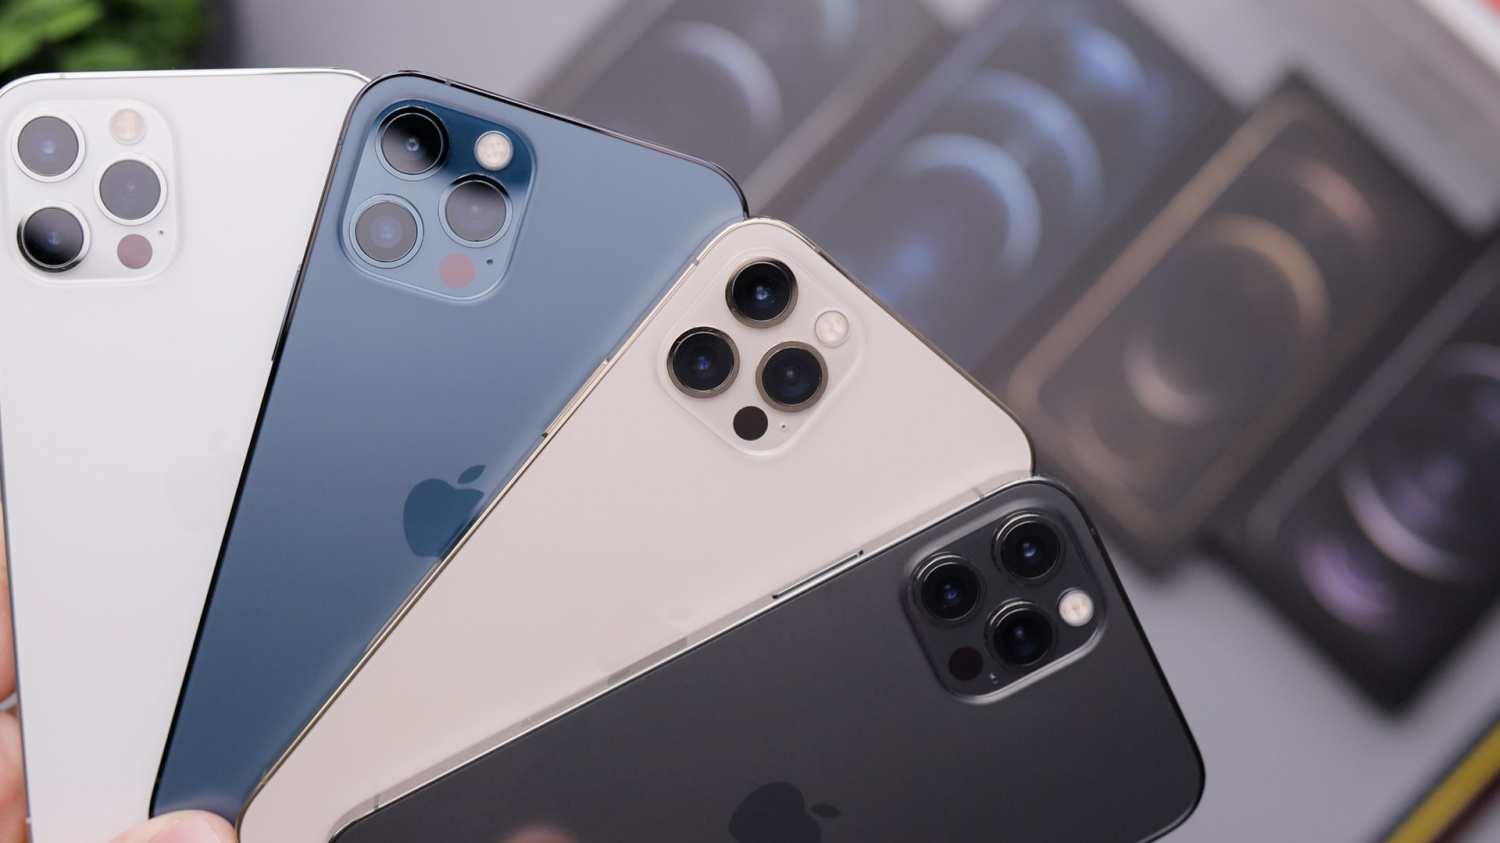 iPhone 13 vs. iPhone 14: Rumored Design Differences, Specs and More